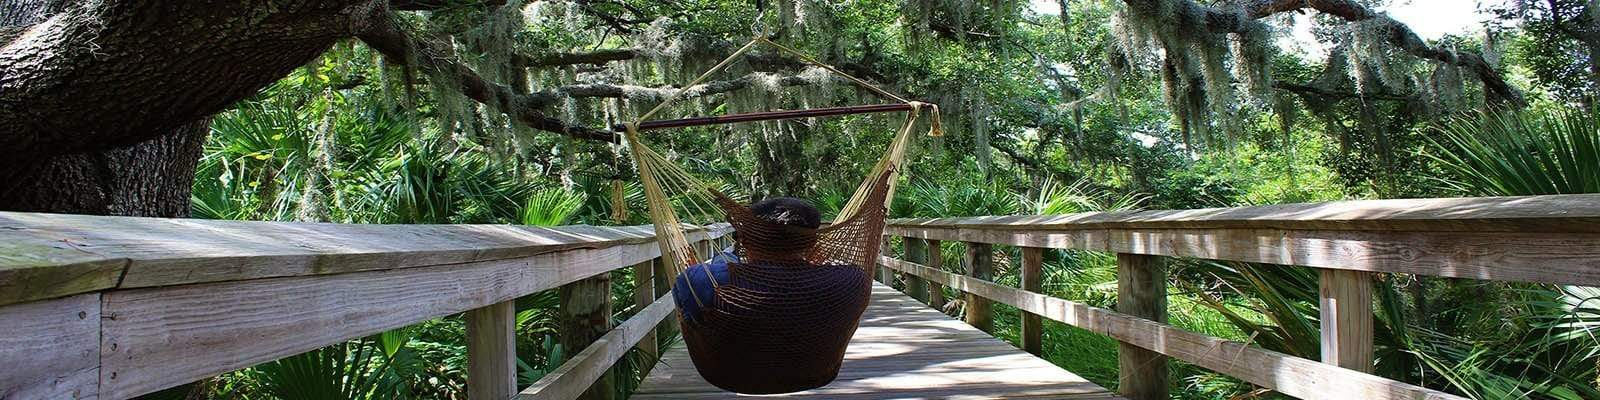 Mayan Hammock Chairs